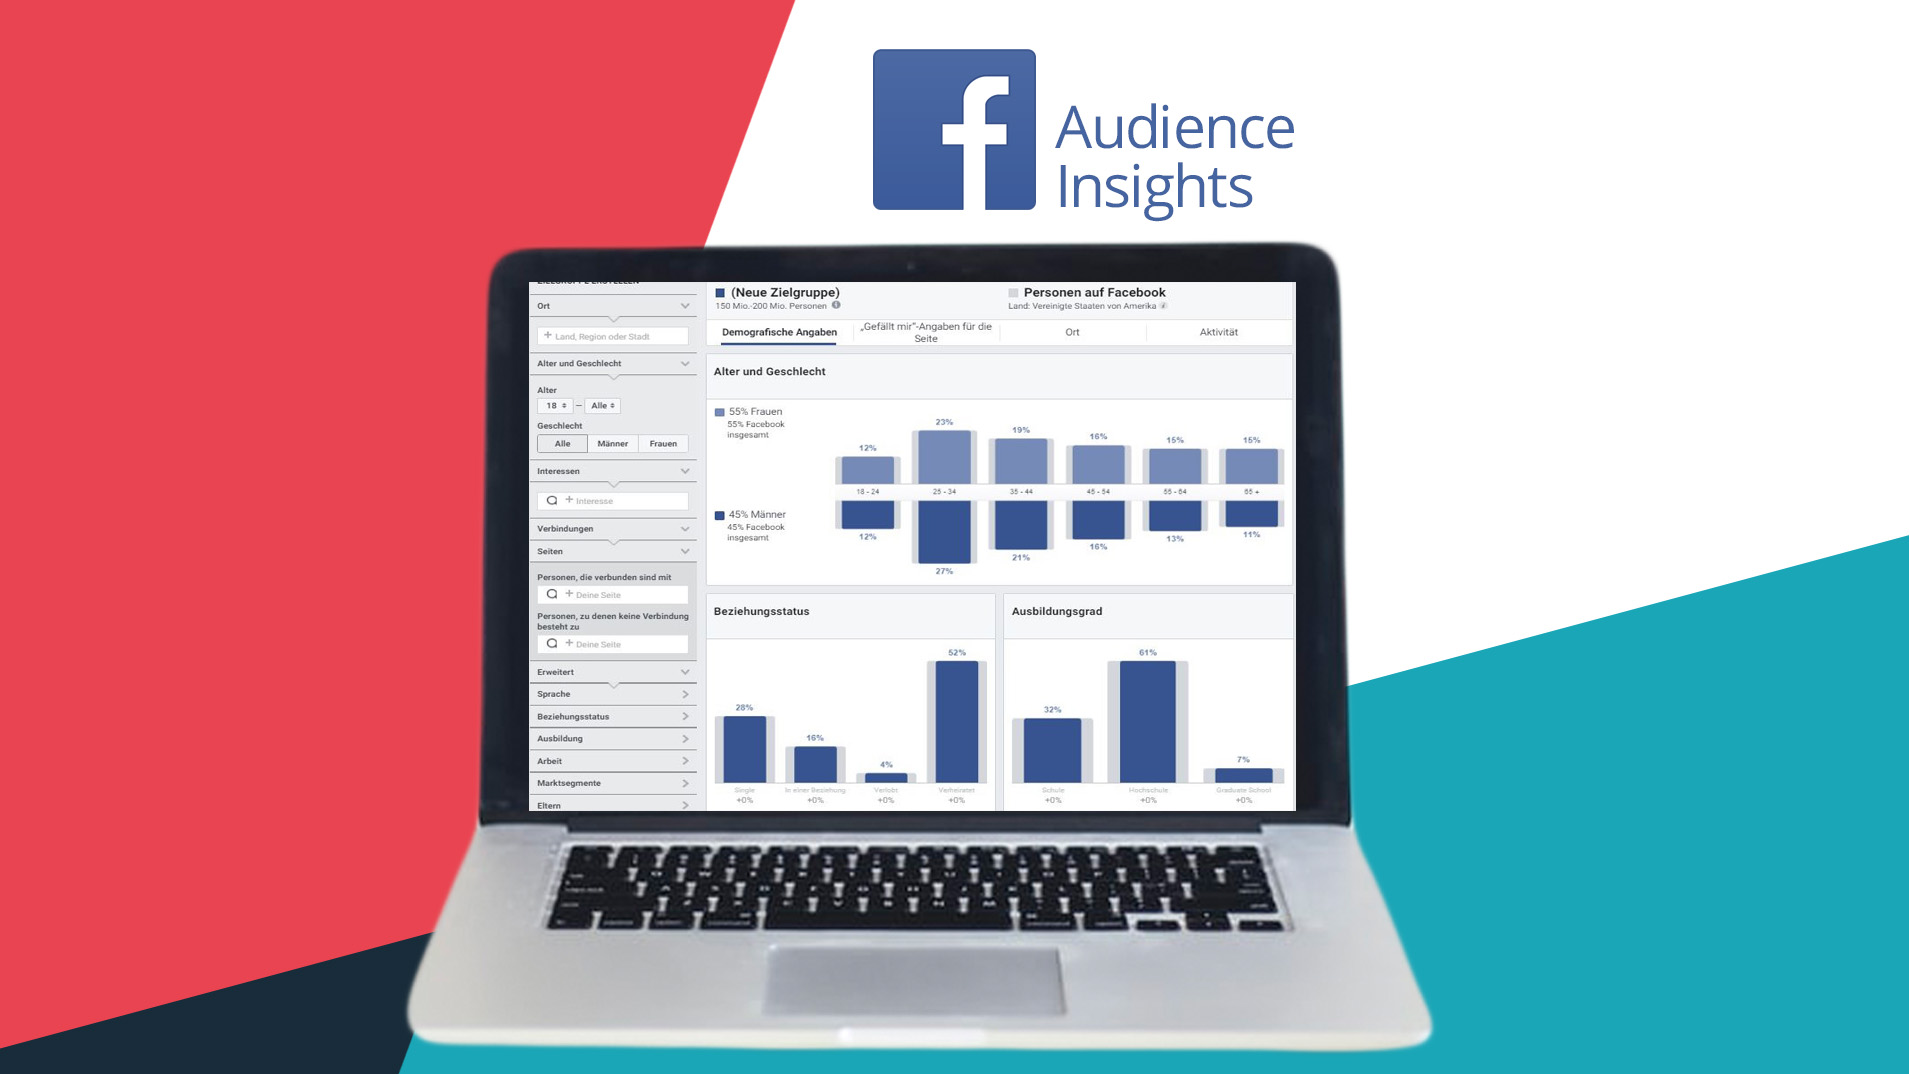 Laptop mit Screenshot der Facebook Audience Insights und Facebook Logo